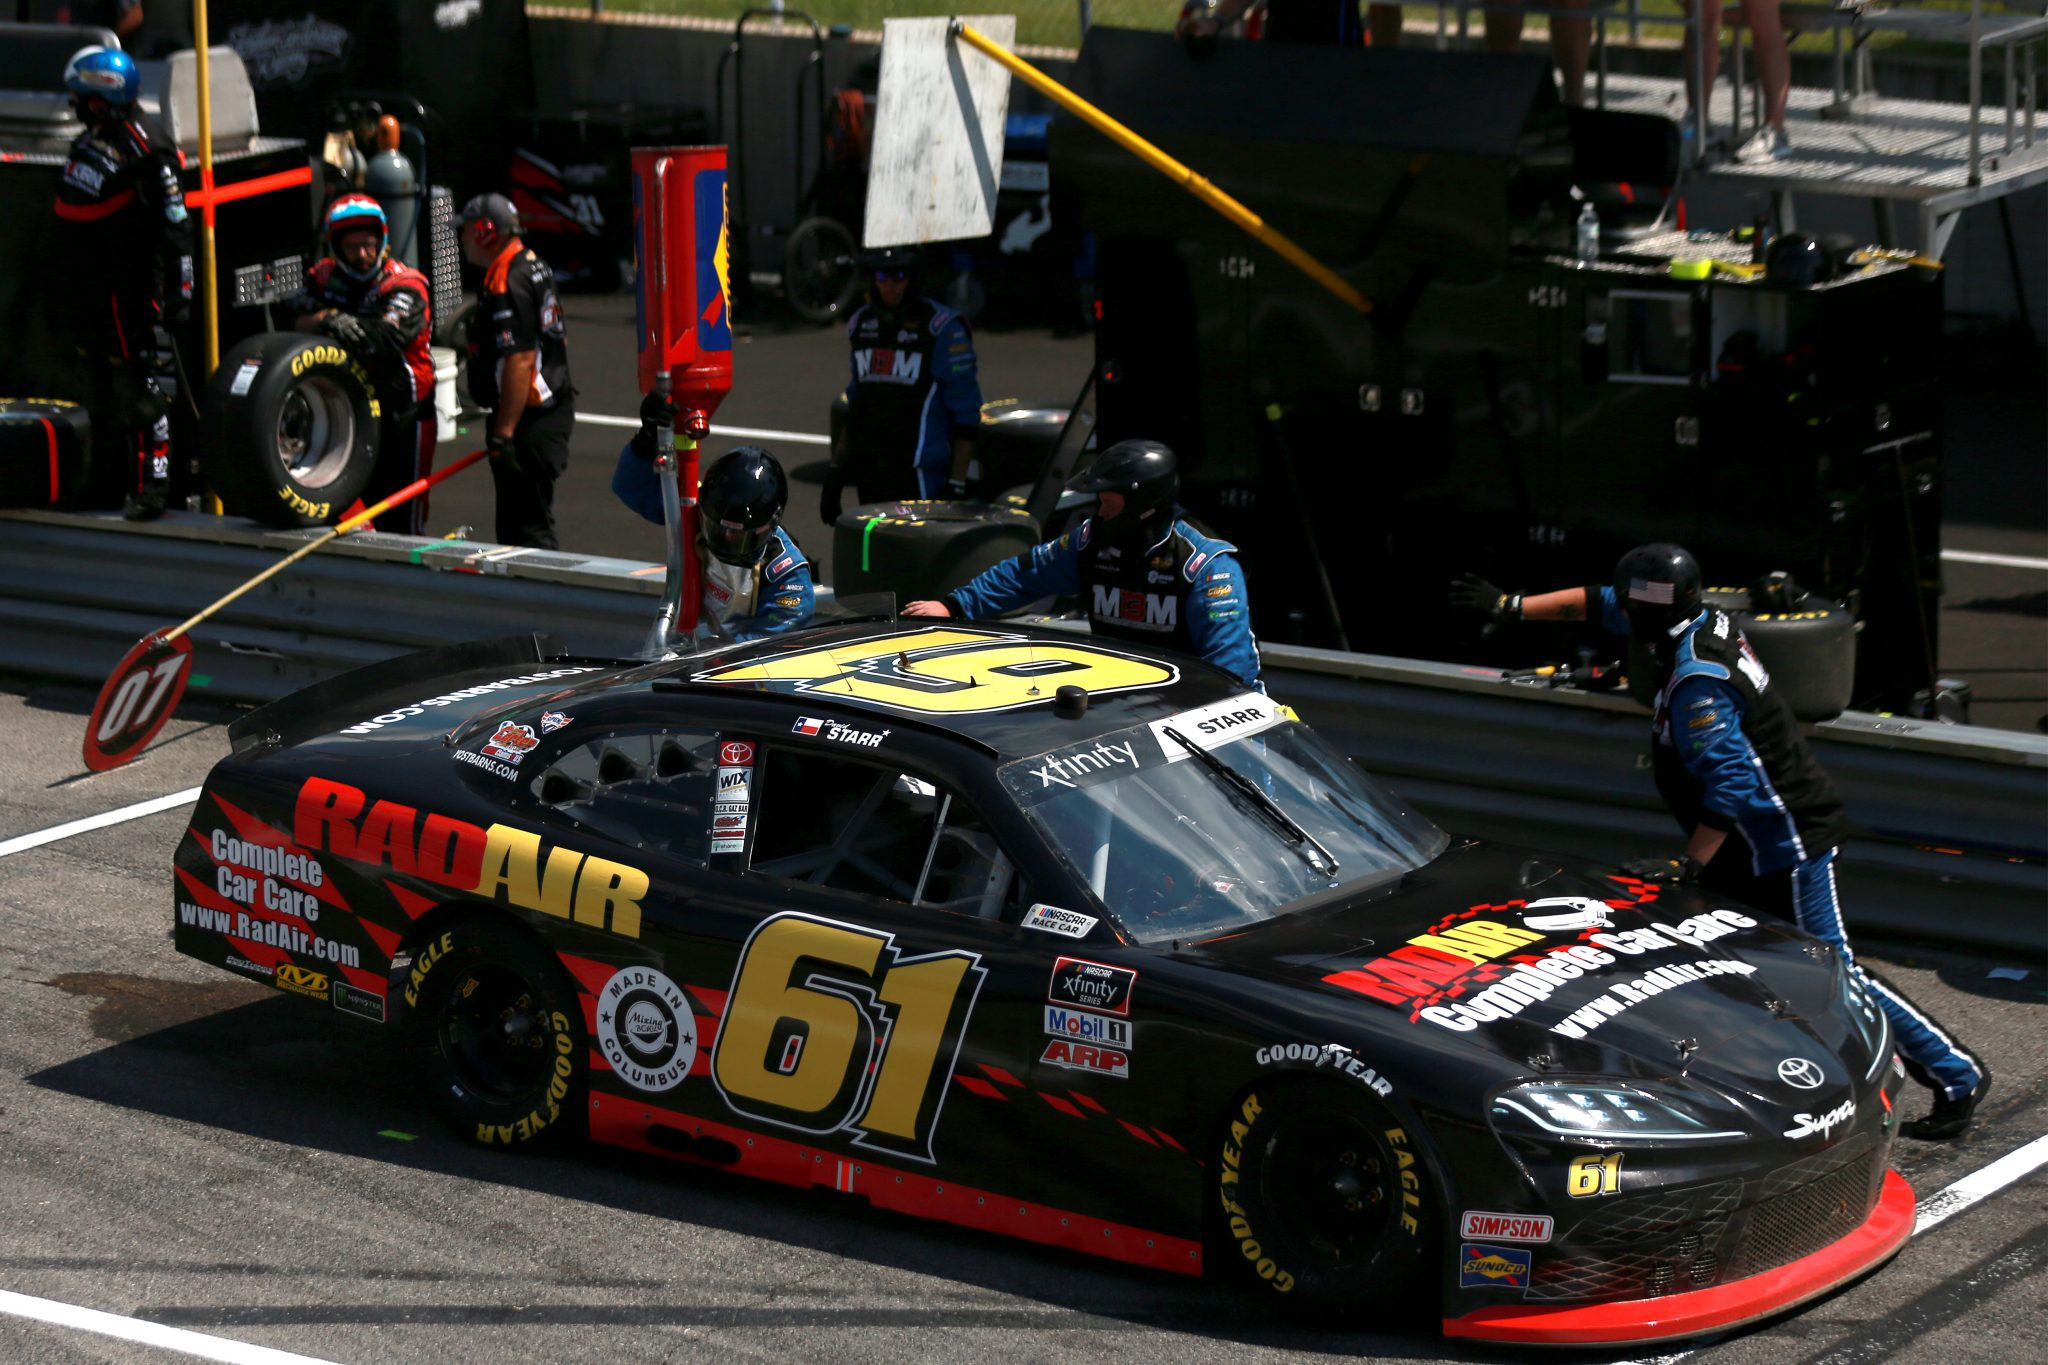 LEXINGTON, OHIO - JUNE 05: David Starr, driver of the #61 RadAir Complete Car Care Toyota, drives during the NASCAR Xfinity Series B&L Transport 170 at Mid-Ohio Sports Car Course on June 05, 2021 in Lexington, Ohio. (Photo by Sean Gardner/Getty Images) | Getty Images